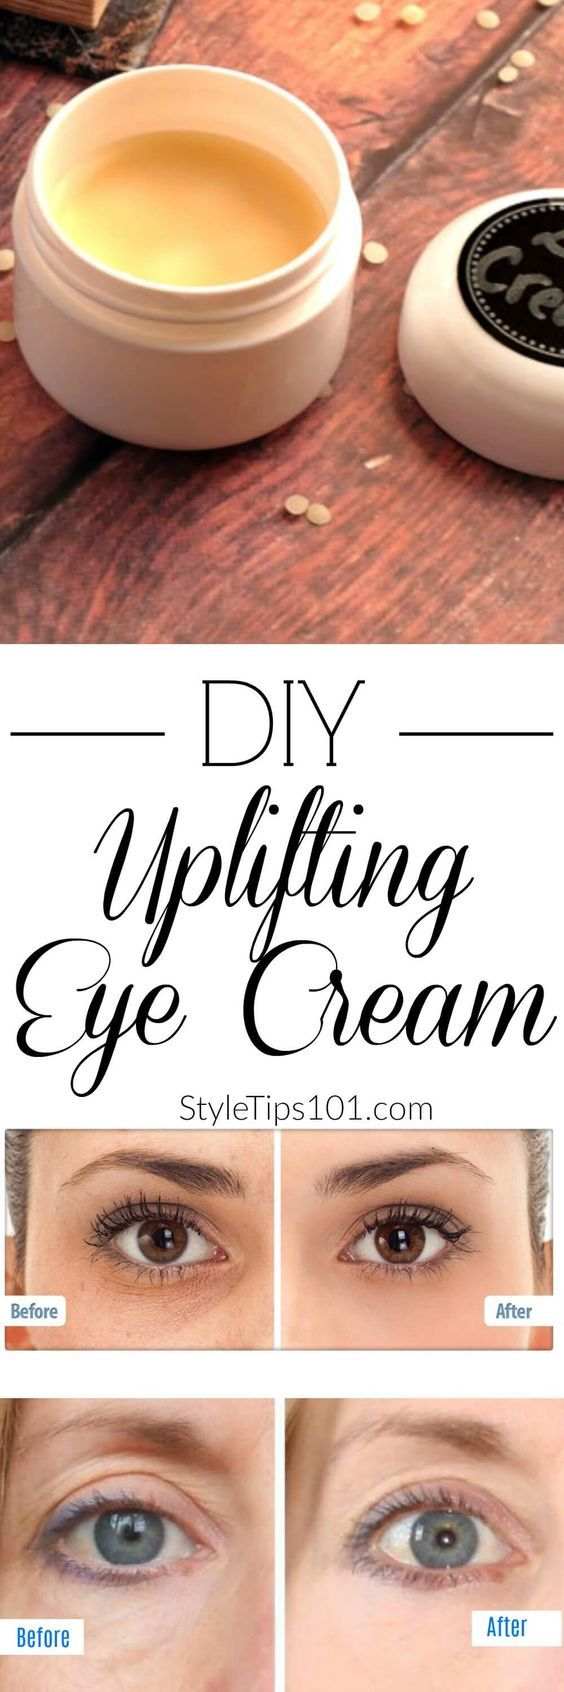 Uplifting Eye Cream Recipe For Tired, Puffy Eyes (With